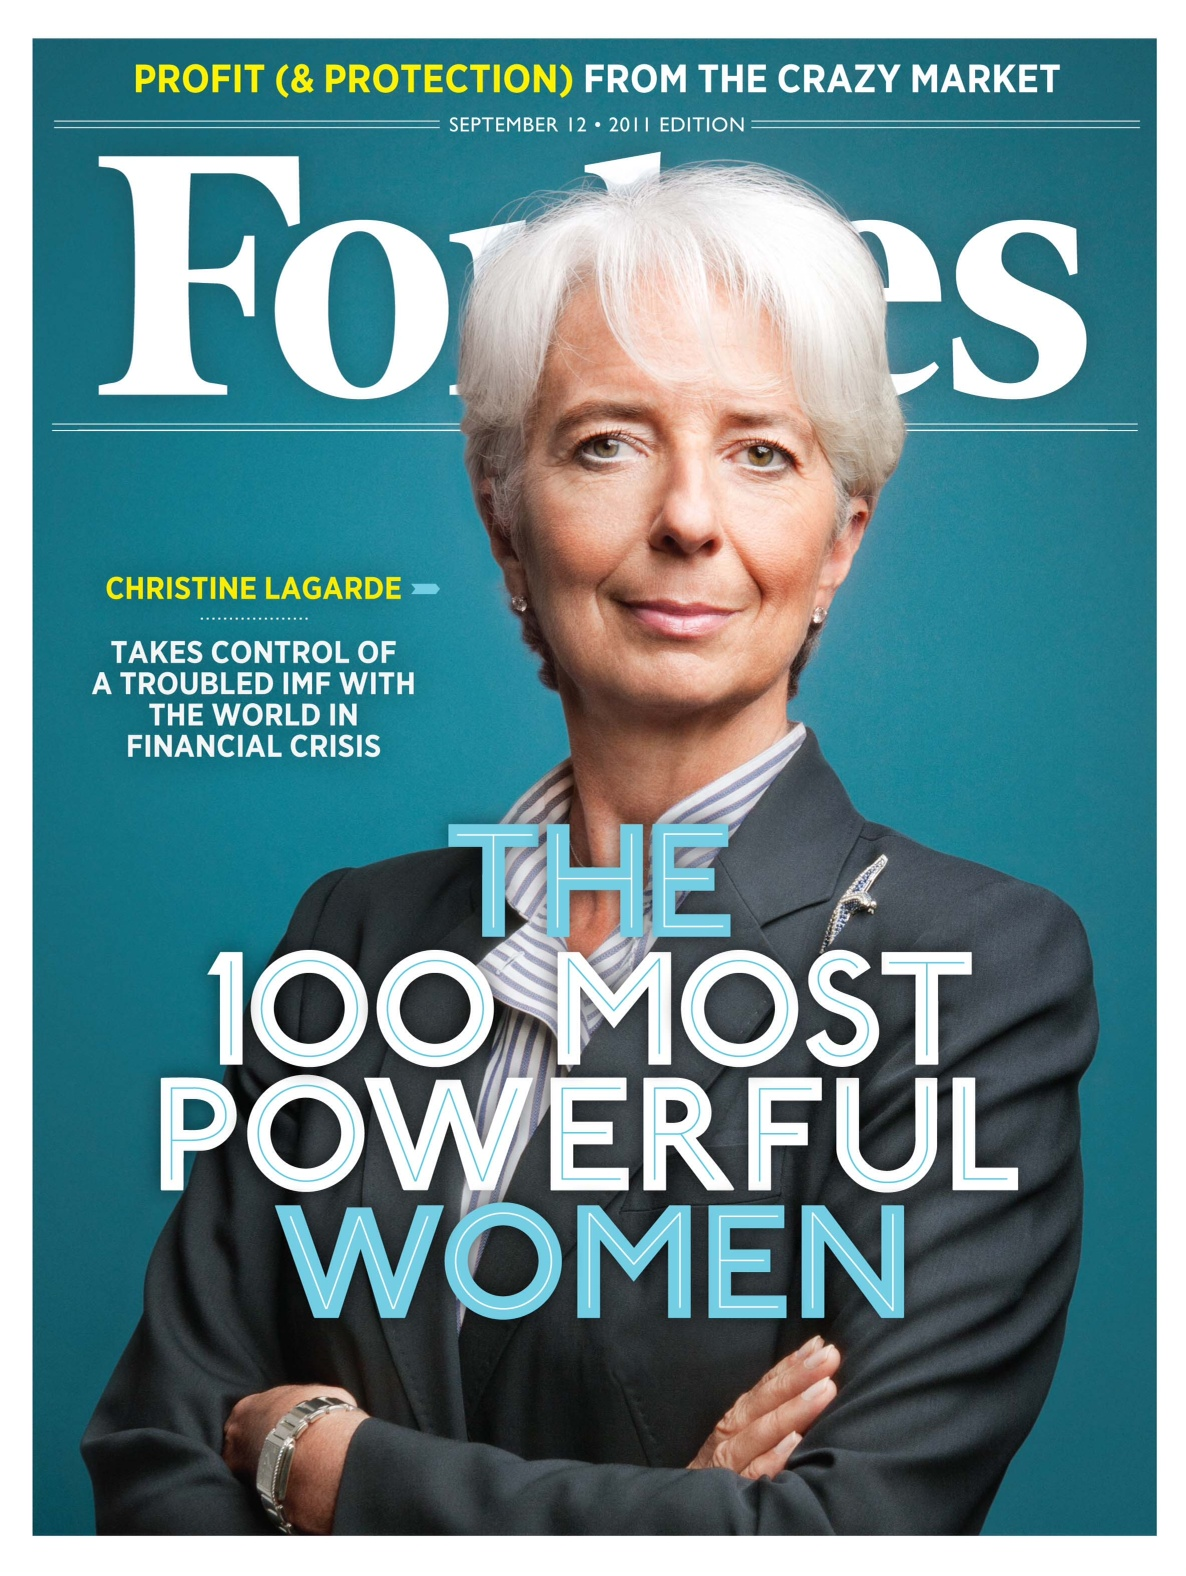 http://3.bp.blogspot.com/-u76lDU1nCnA/UPEj8Be2wCI/AAAAAAAAAKM/2d-wL21BmvY/s1600/India-people-forbes-PowerWomen-cover.jpg